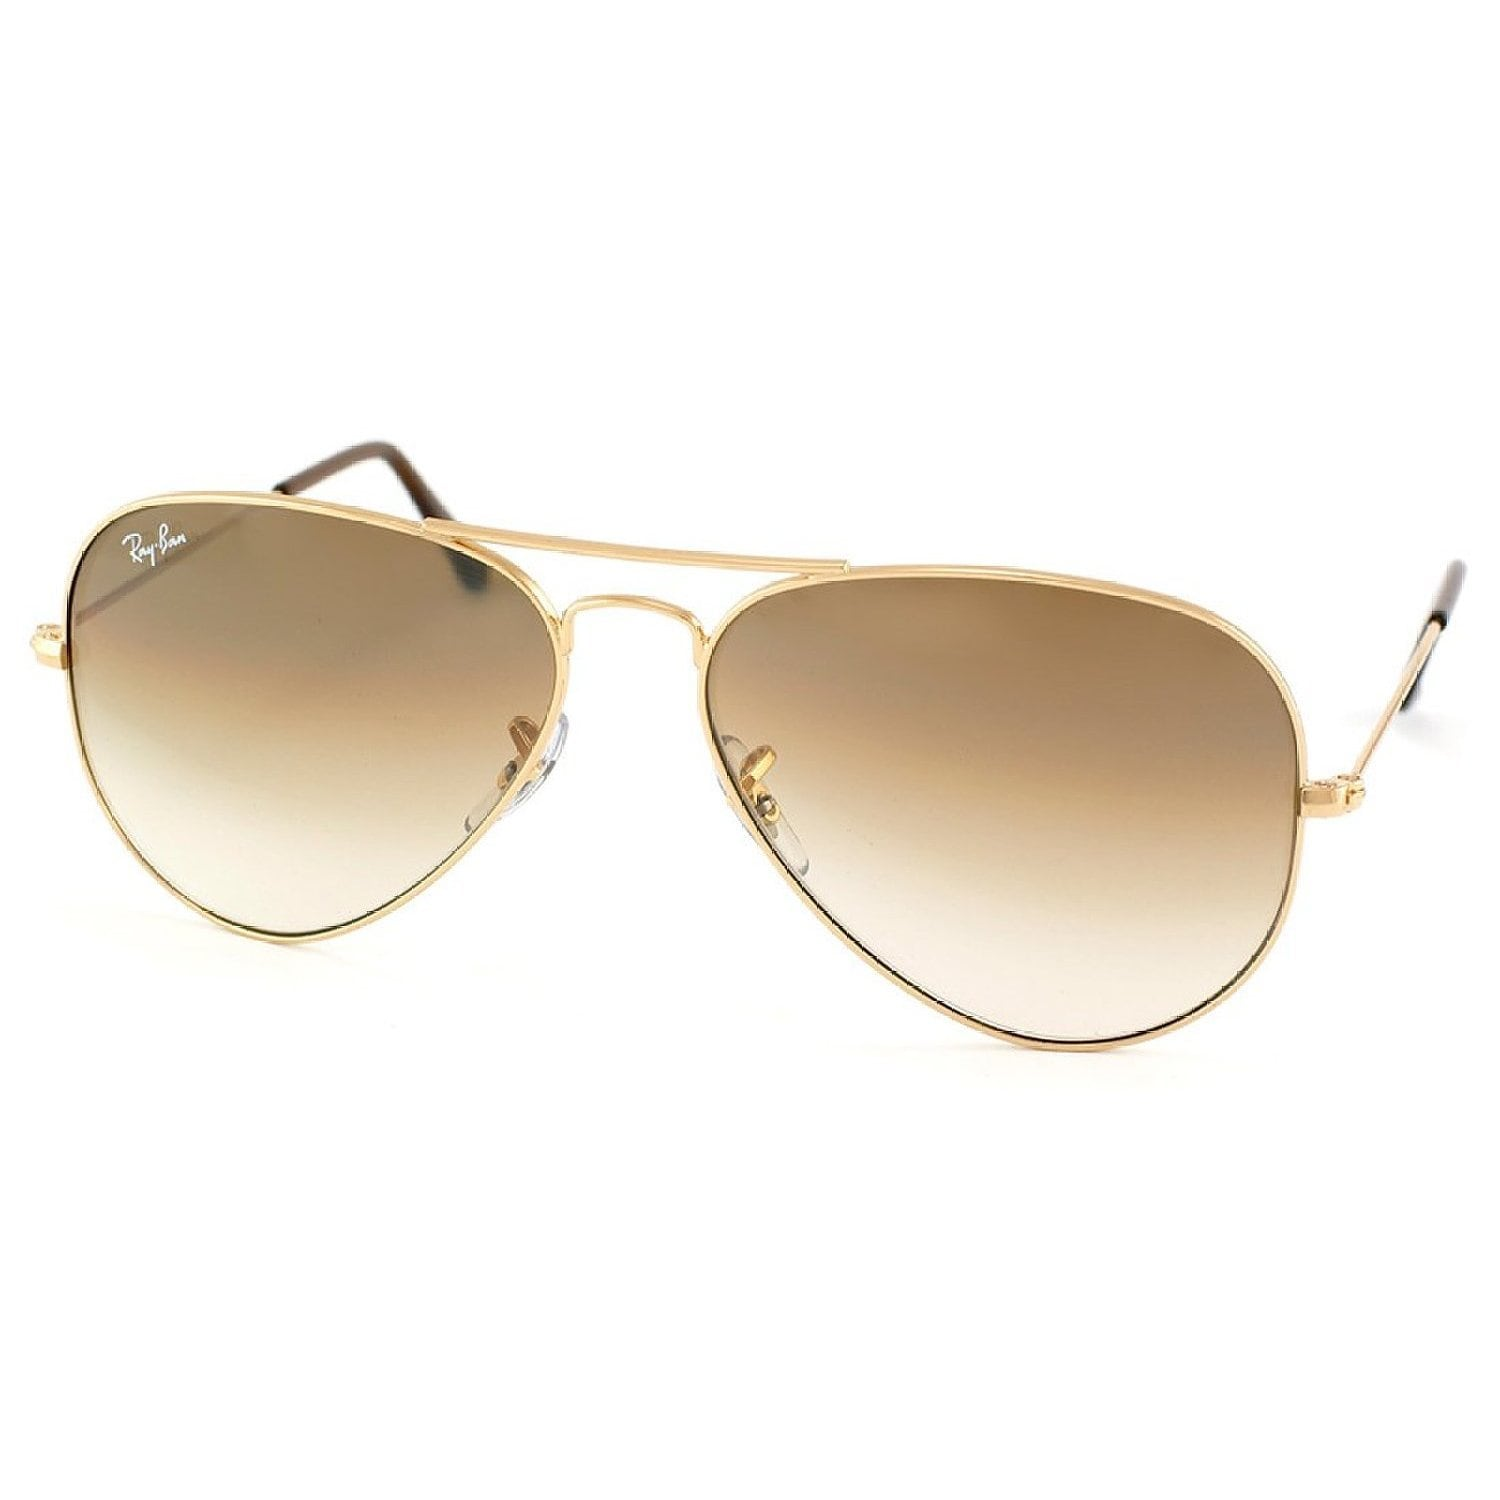 0a05e56350b Shop Ray-Ban Aviator  RB3025  Unisex Gold Frame Light Brown Gradient Lens  Sunglasses - On Sale - Free Shipping Today - Overstock - 8546523